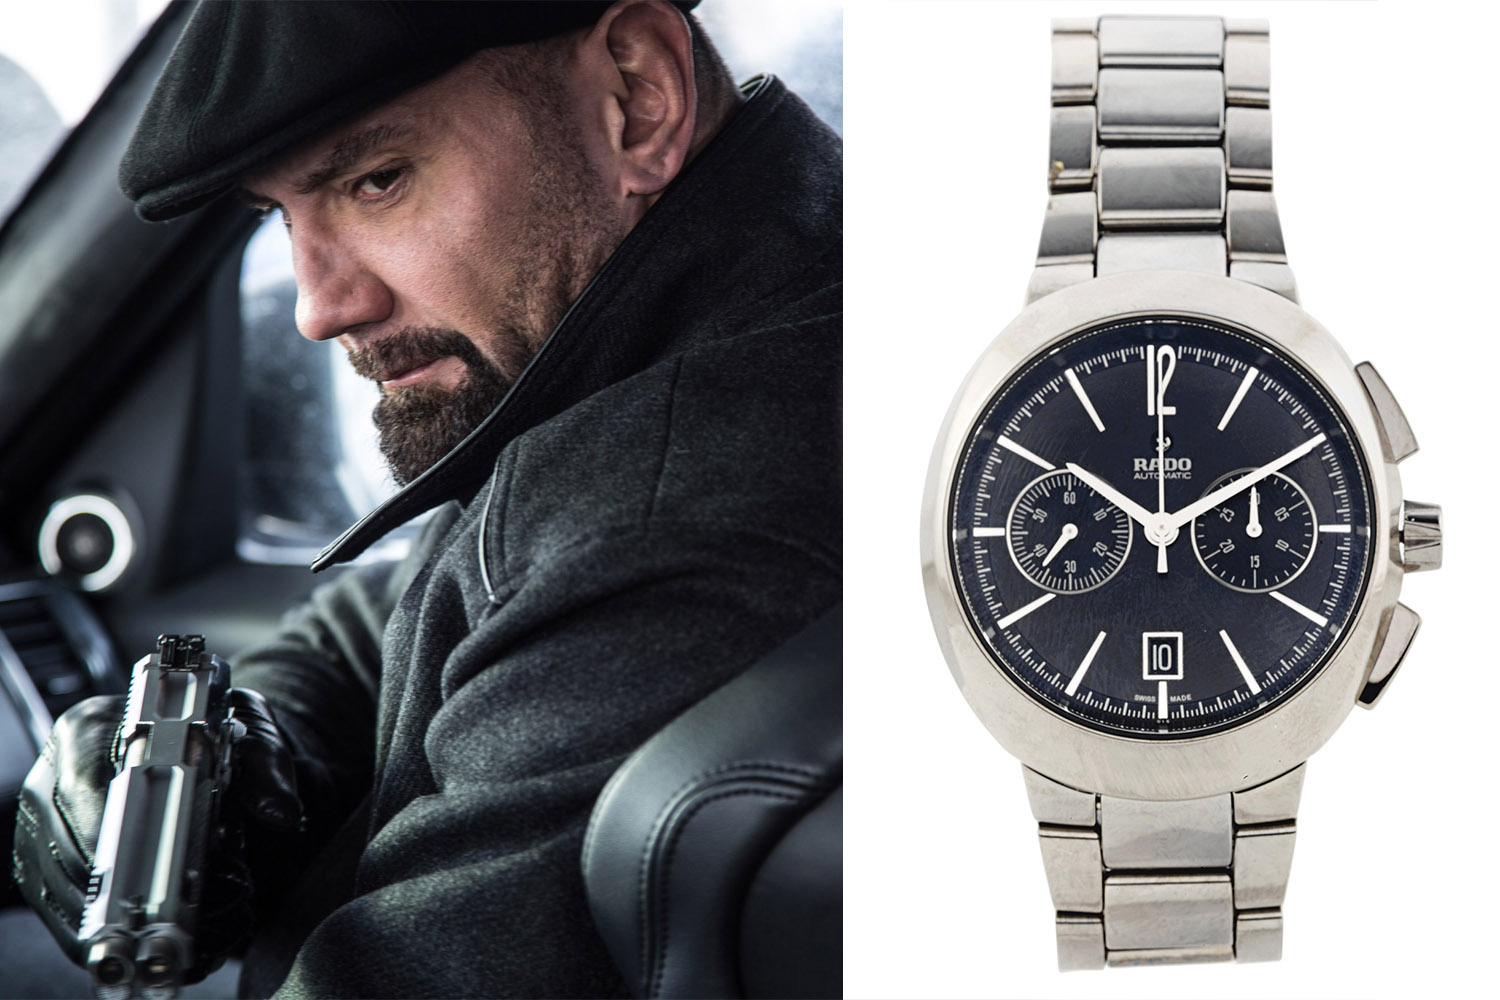 Christie's James Bond Spectre Auction - ceramic Rado D-Star automatic chronograph Dave Bautista Hinx